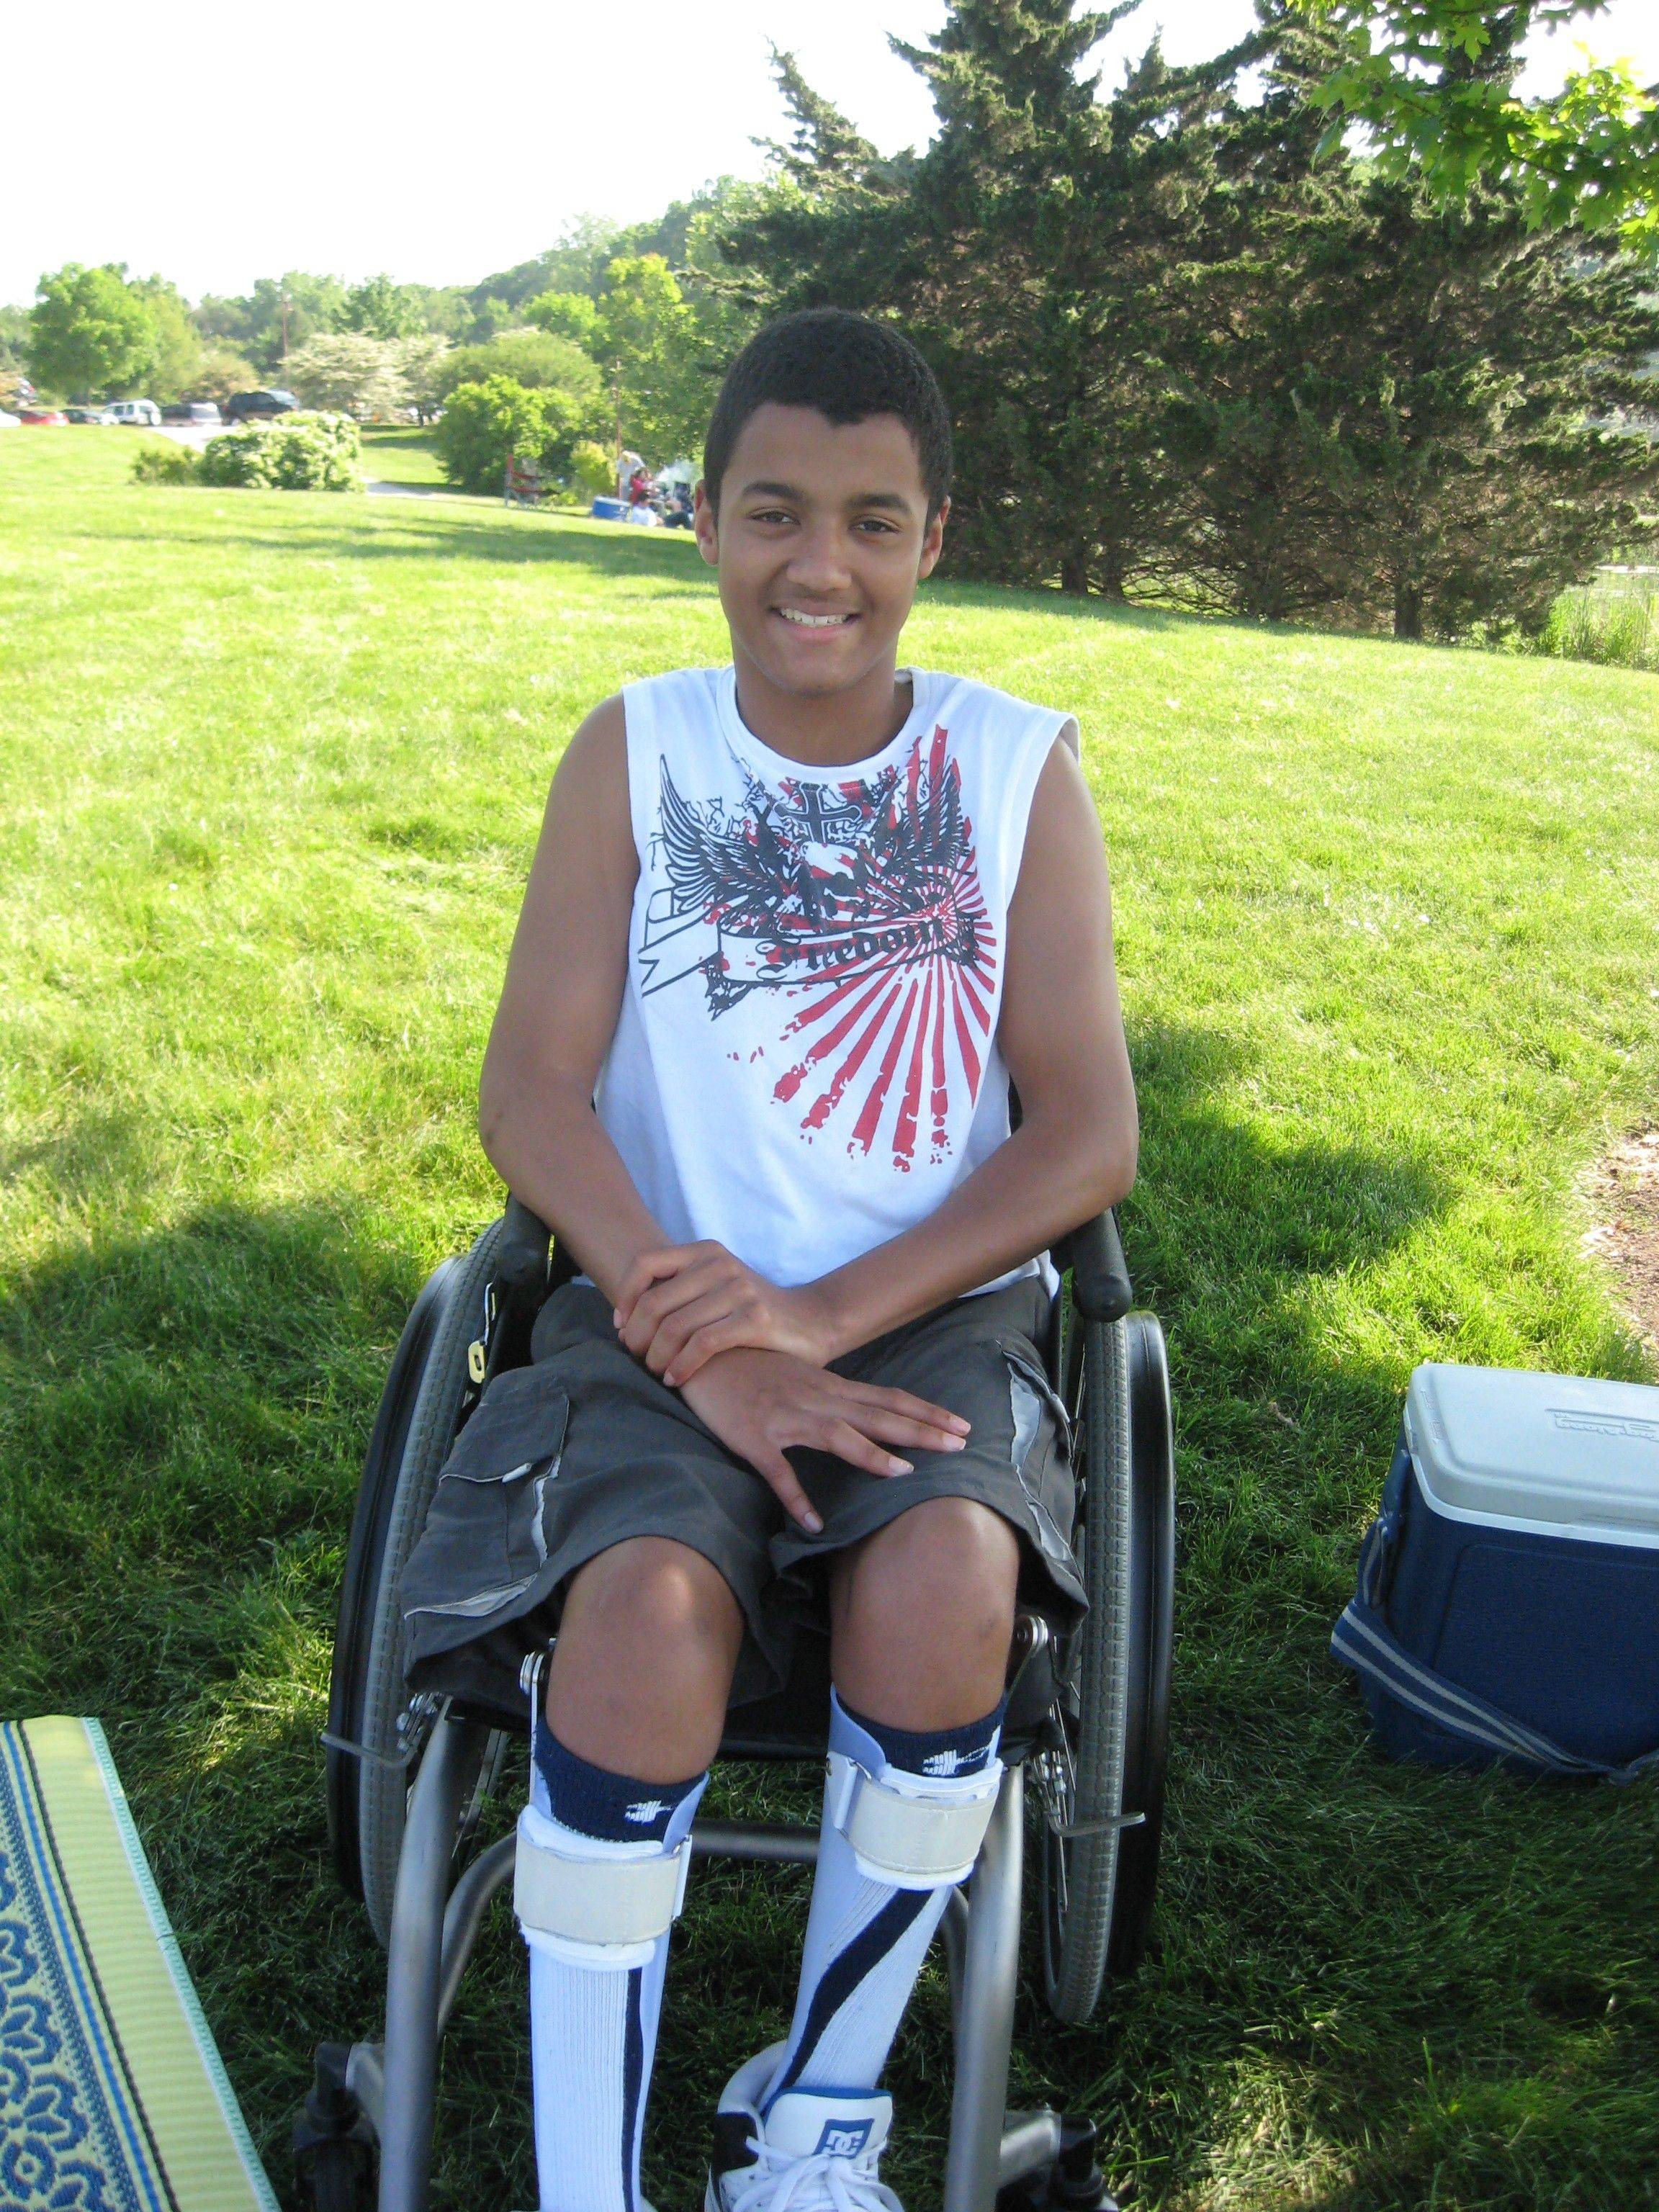 It will cost more than $5,000 to replace Marlon Tapang's customized wheelchair, which was stolen Friday in Gurnee.